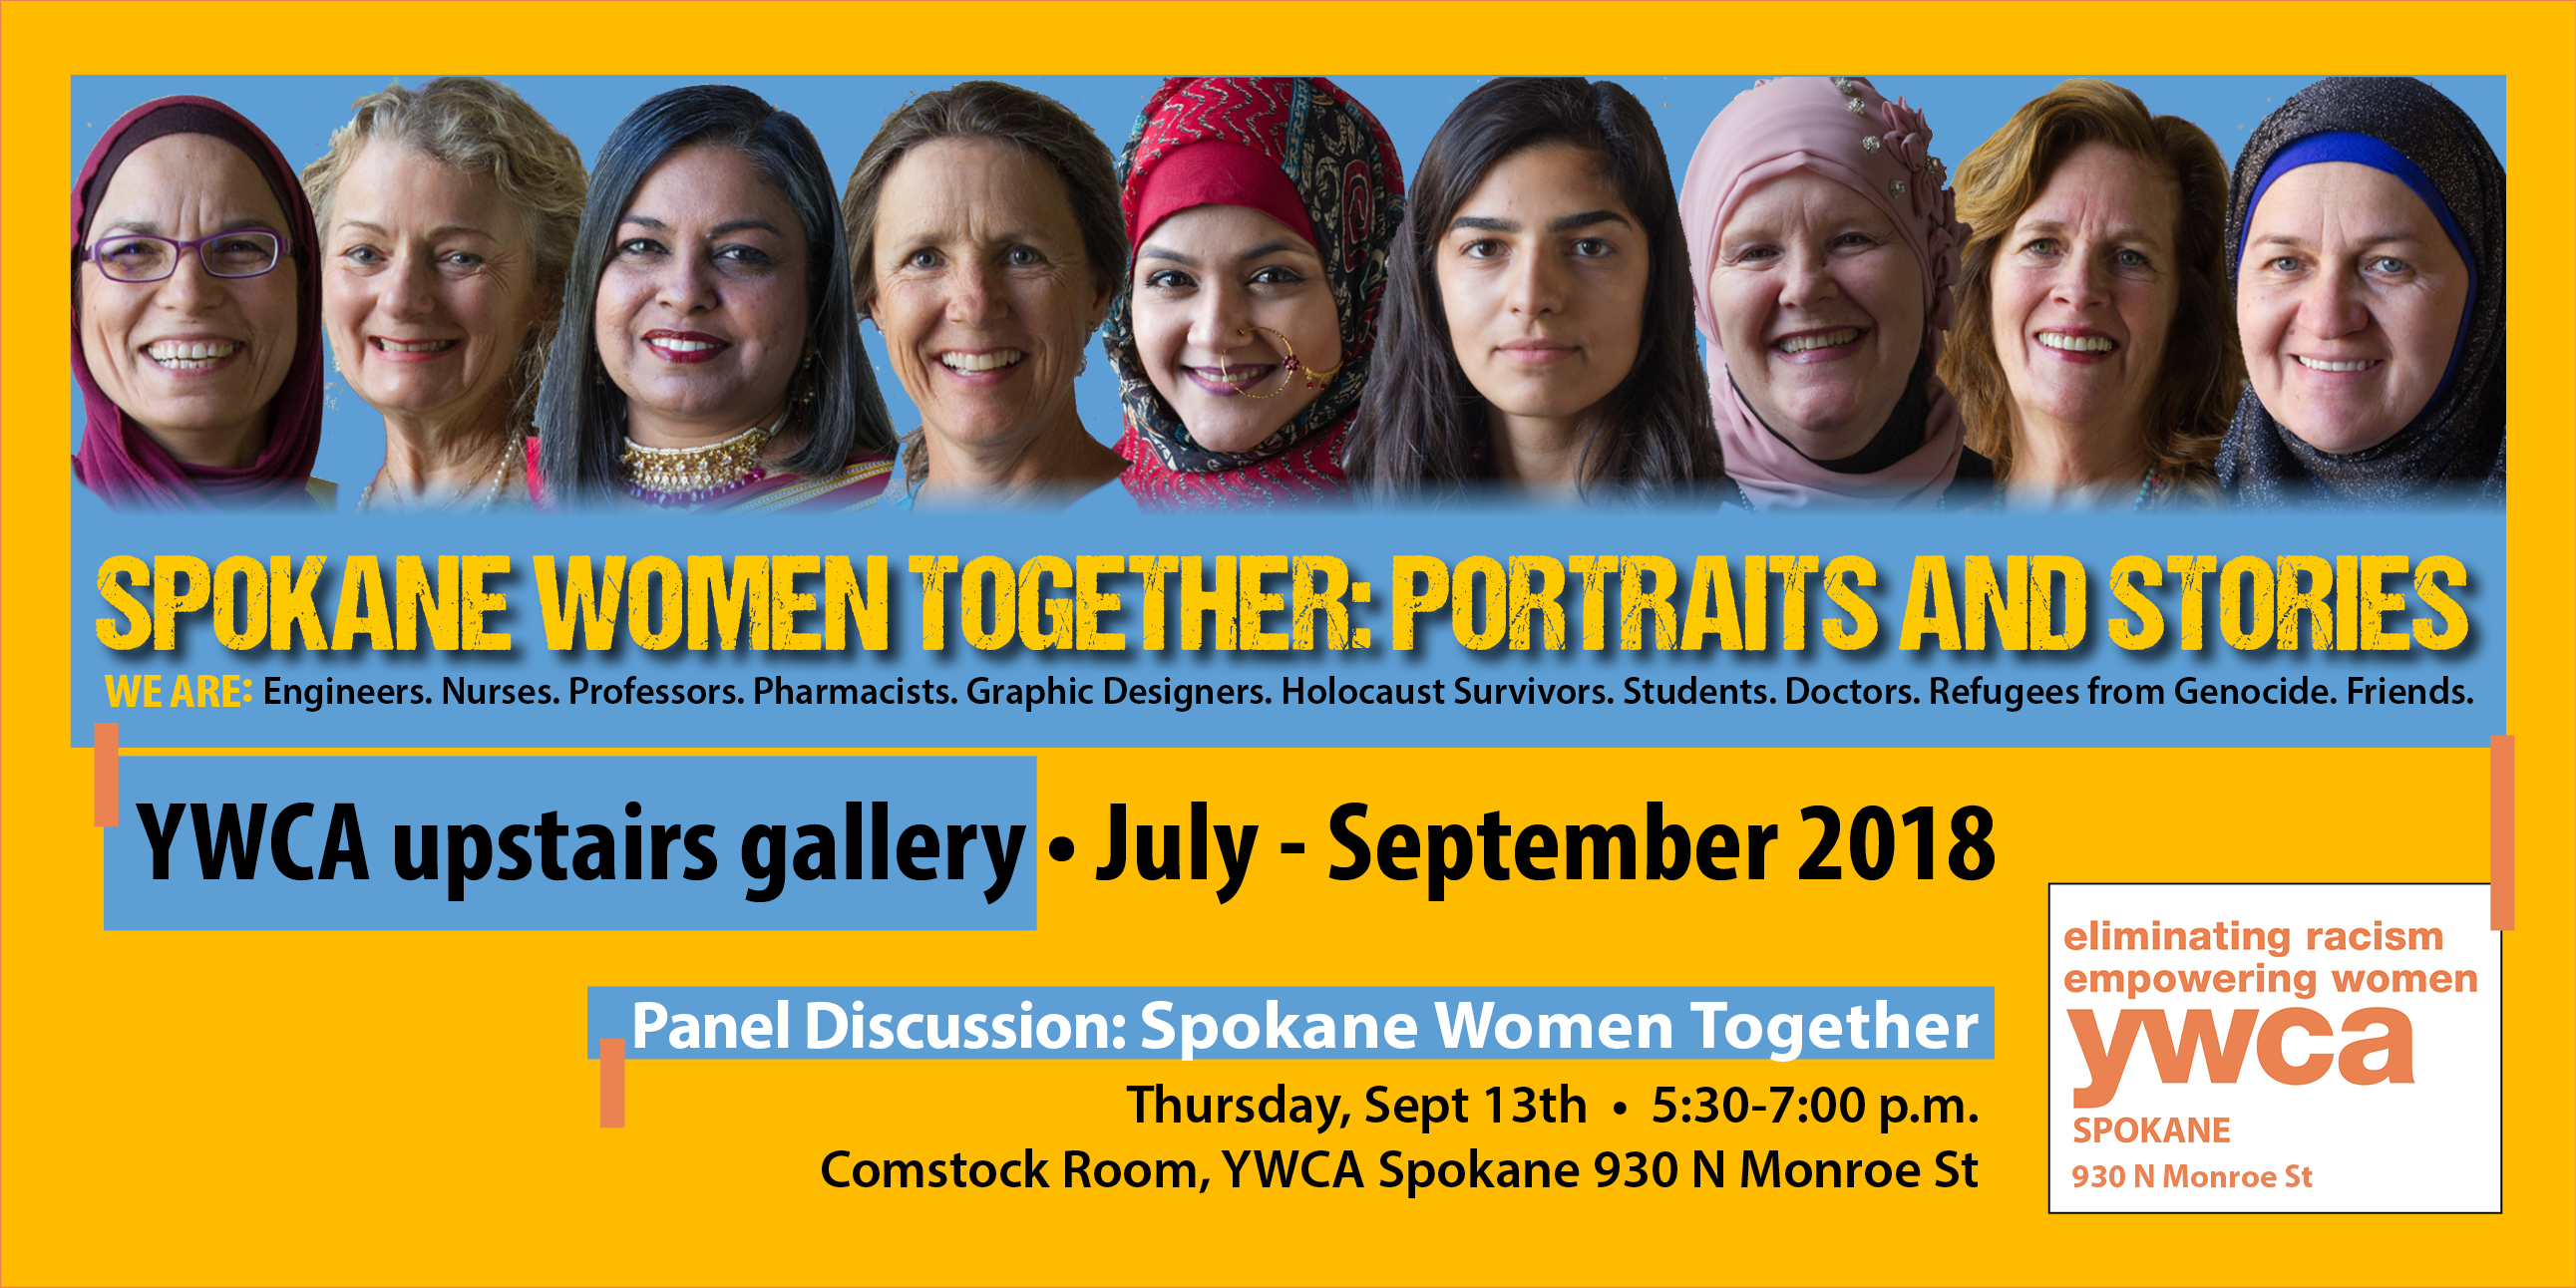 Panel Discussion at YWCA for Spokane Women Together: Portraits and Stories @ YWCA Spokane Upstairs Gallery